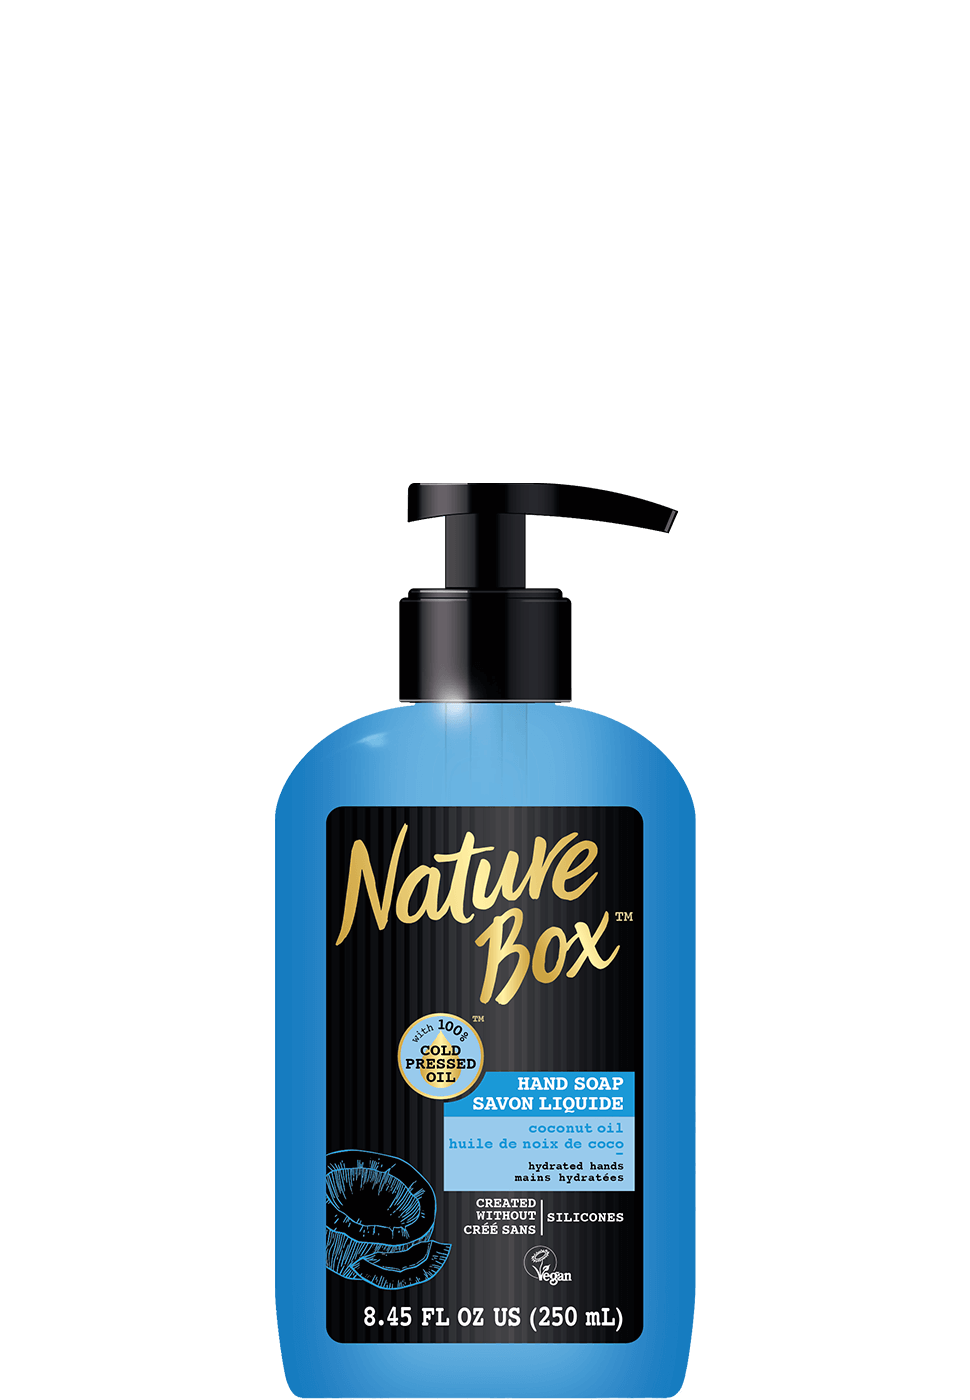 naturebox_us_coconut_hand_soap_970x1400